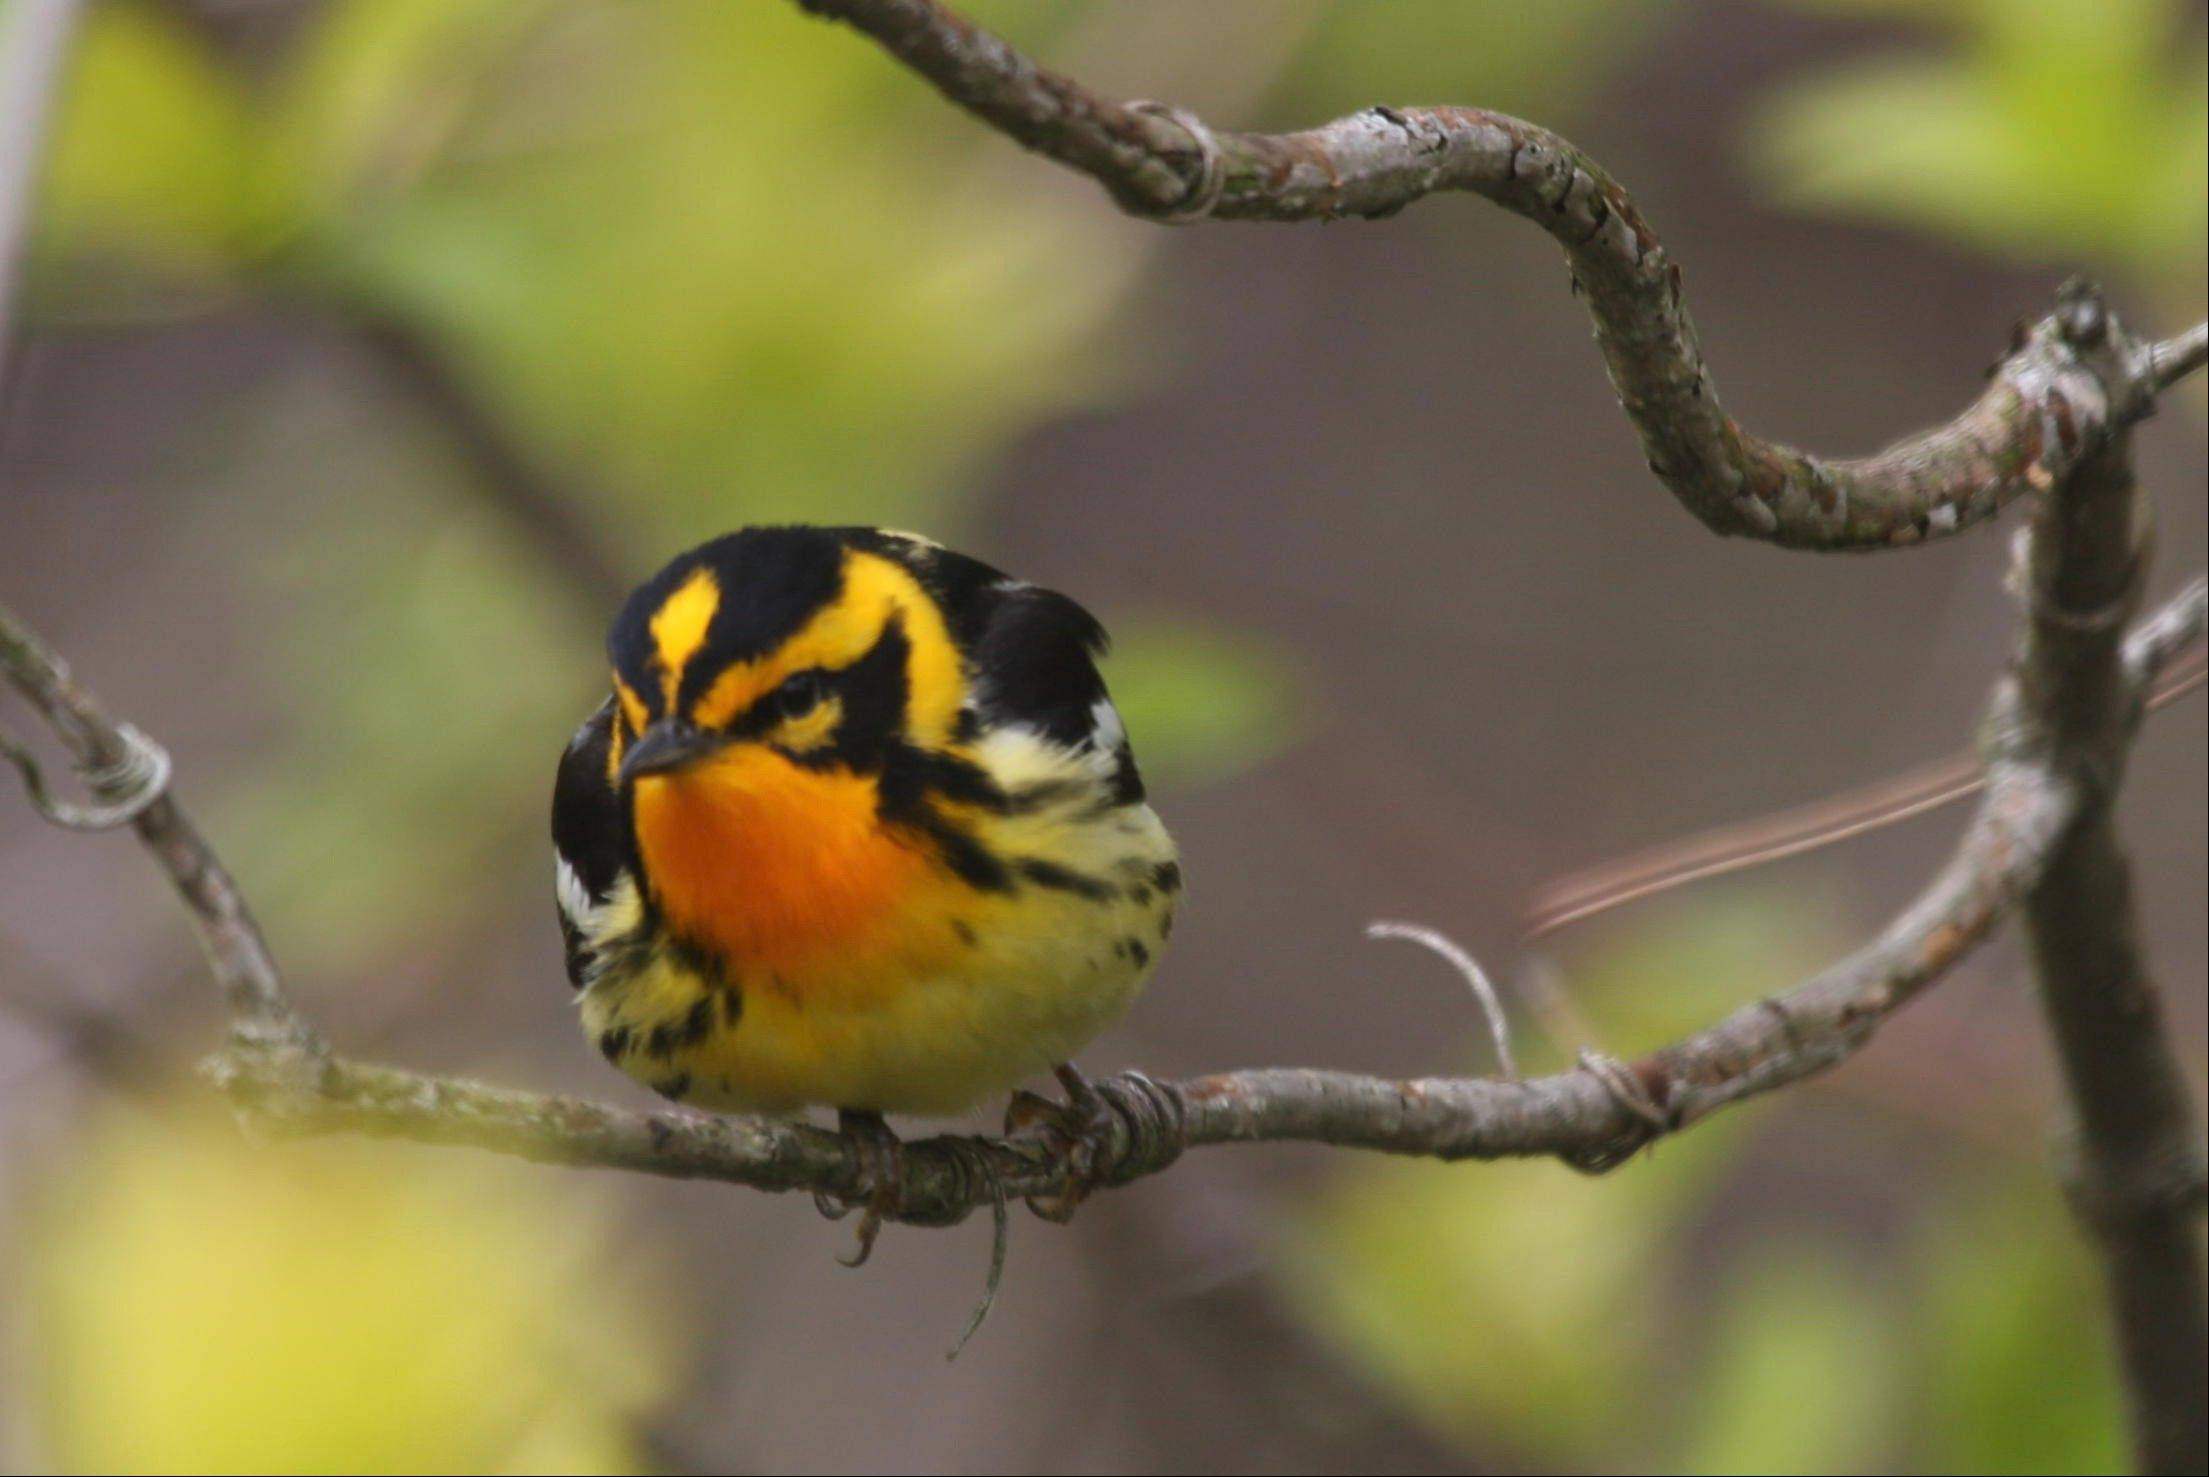 Sue Wagoner took this photo of a blackburnian warbler, a spring migrant admired for its flashy colors and fondness for treetops, at Magee Marsh Wildlife Area in Ohio.